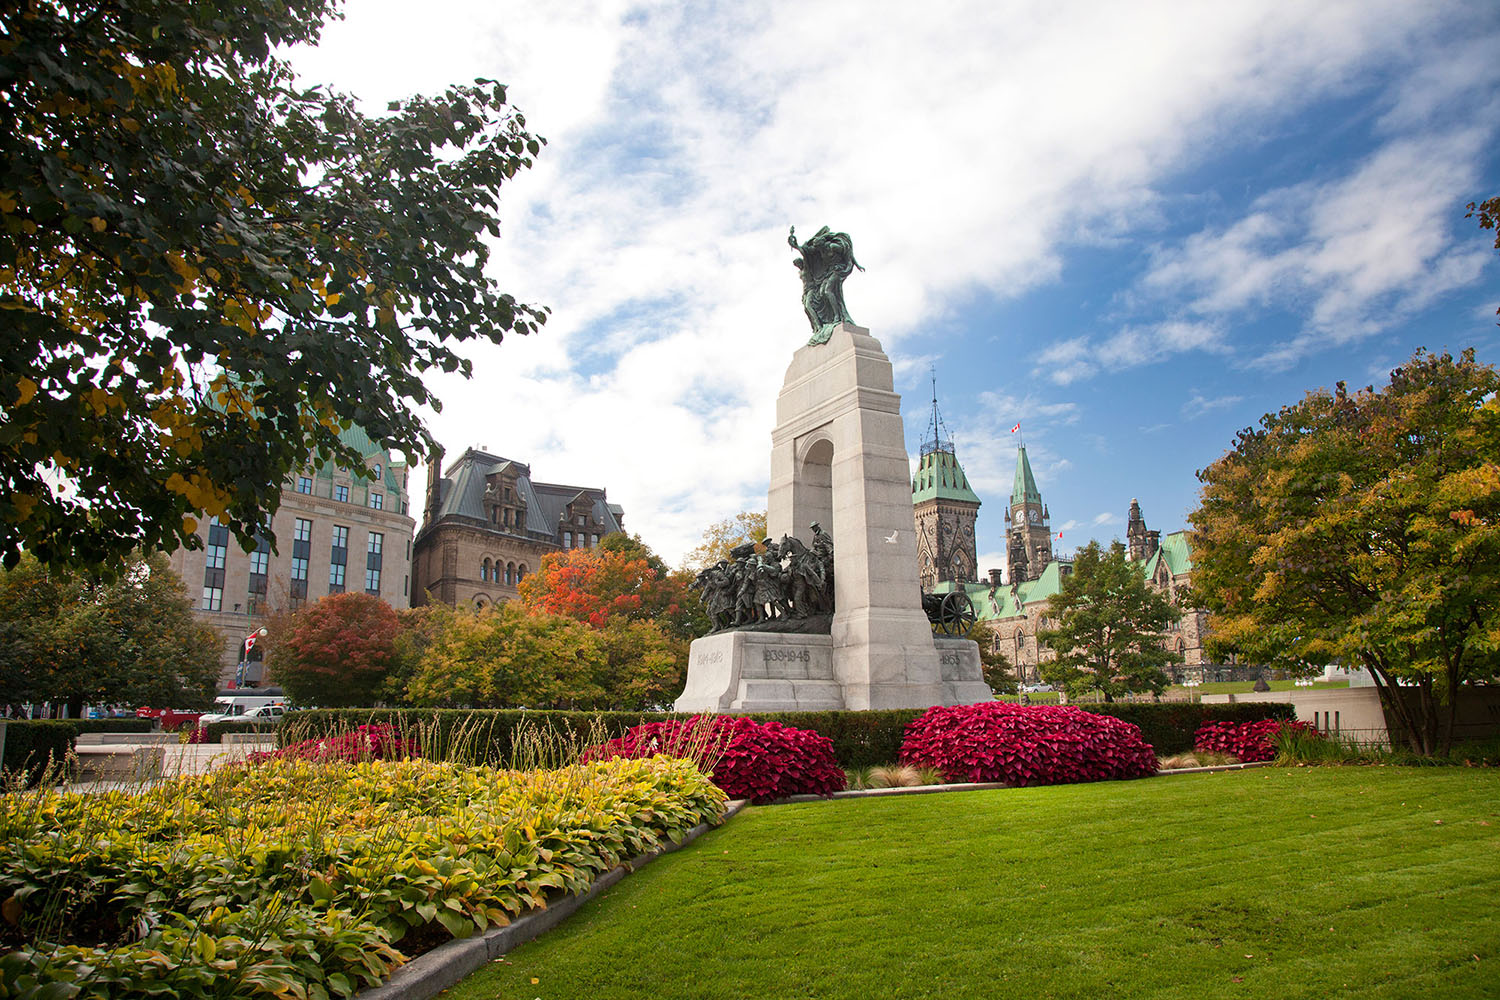 View enlarged image of the National War Memorial